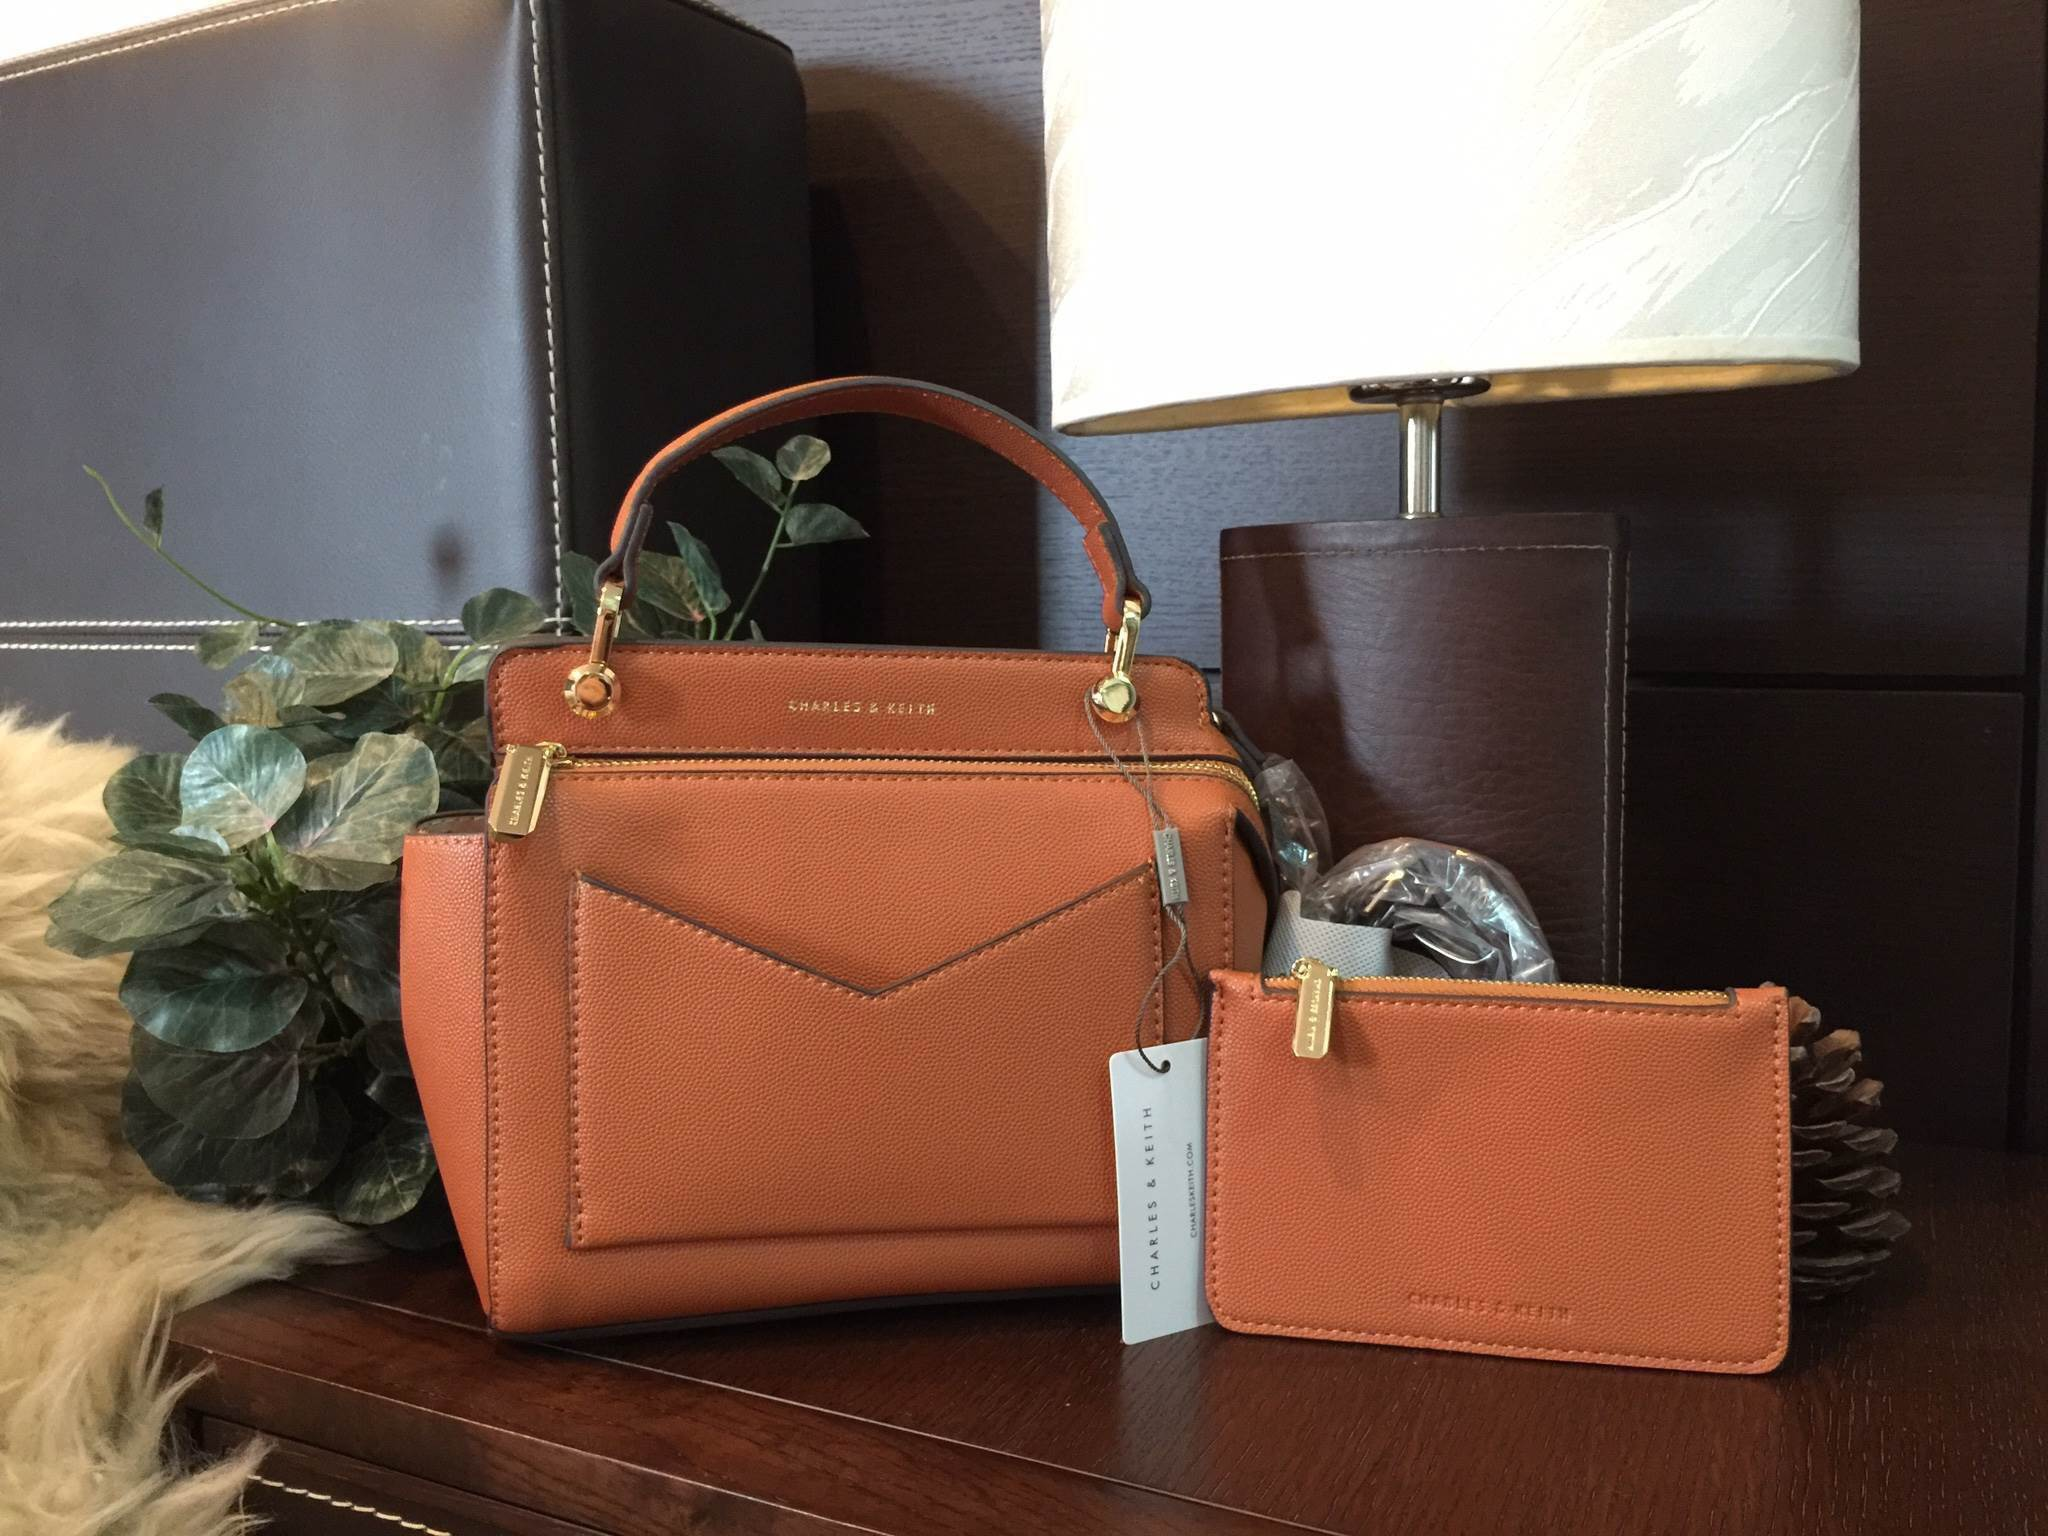 CHARLES & KEITH SMALL TOP HANDLE BAG *สีส้ม